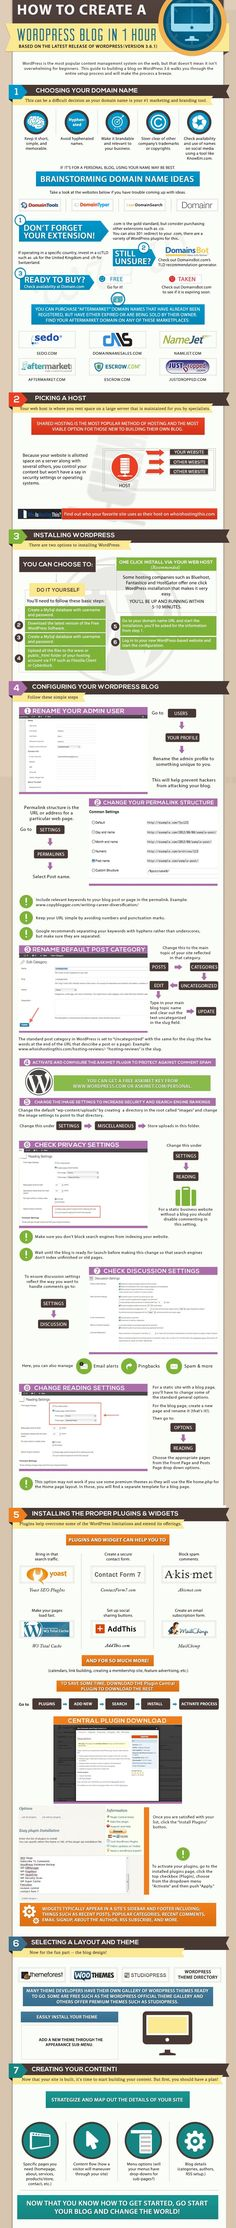 How to Create a WordPress Website in 1 Hour [Infographic]